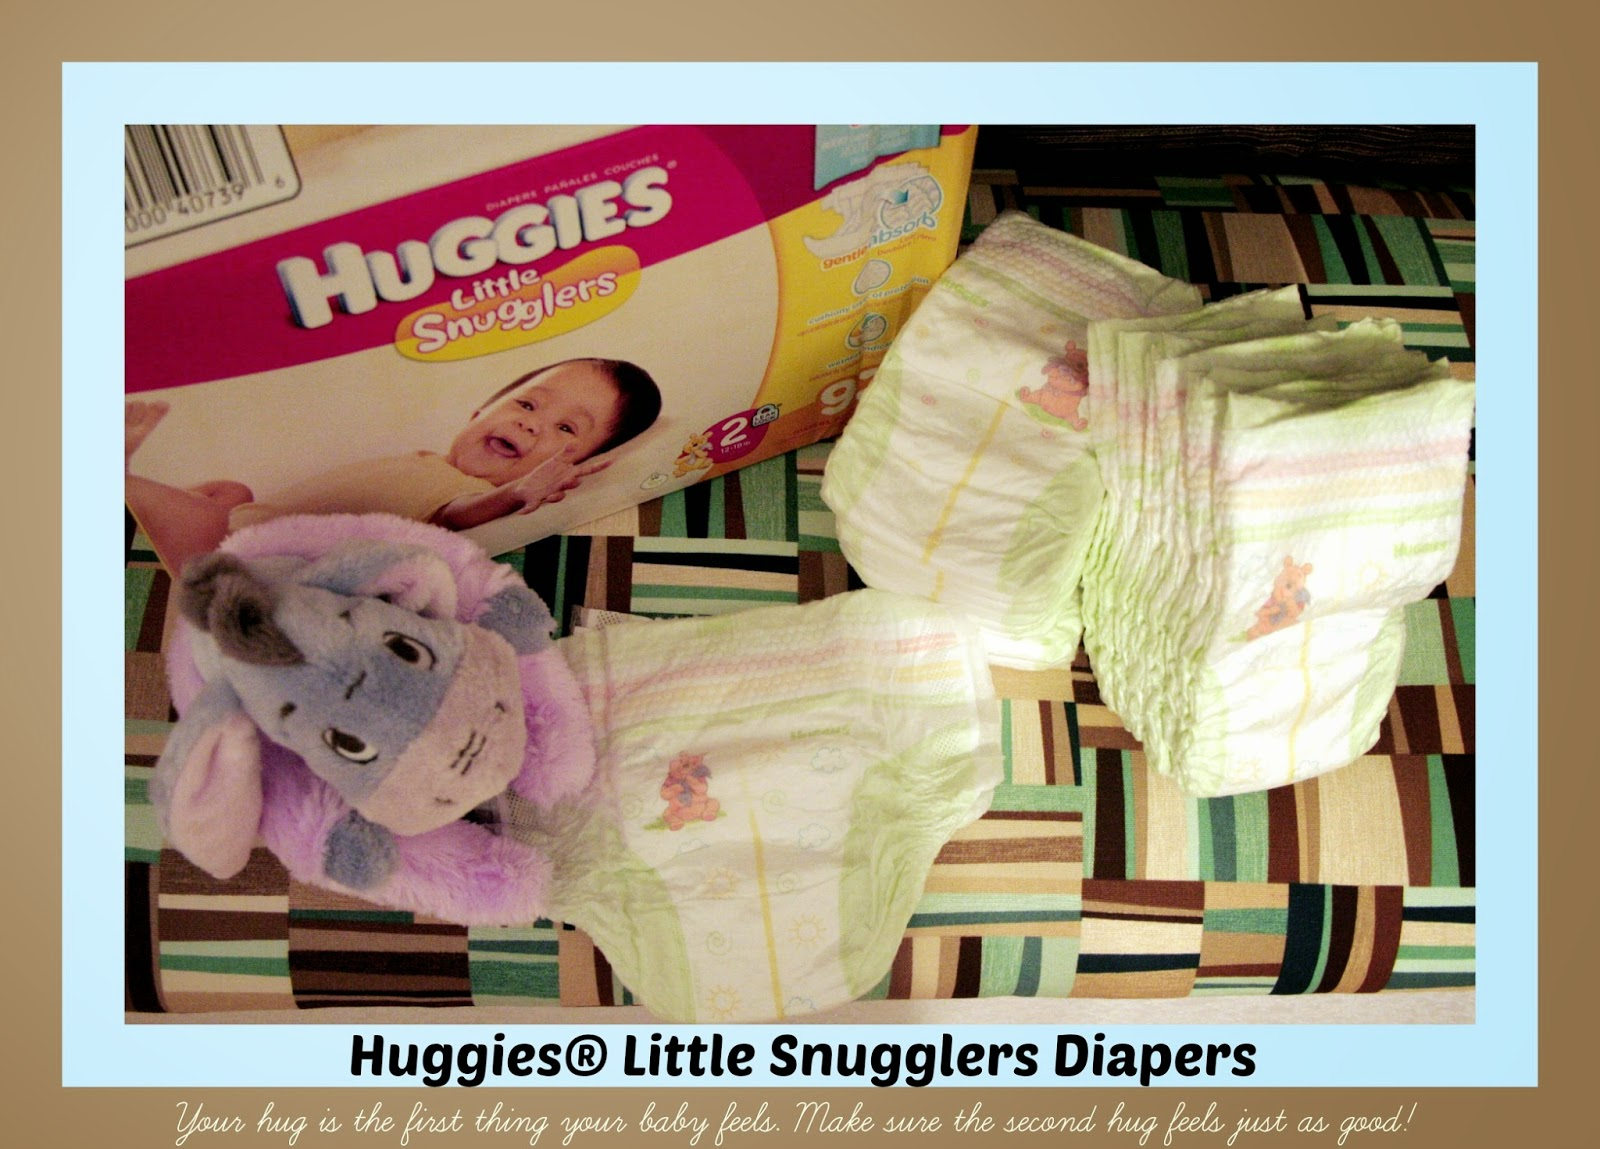 Huggies® Little Snugglers Diapers are OUR GO TO! #MC #Sponsored